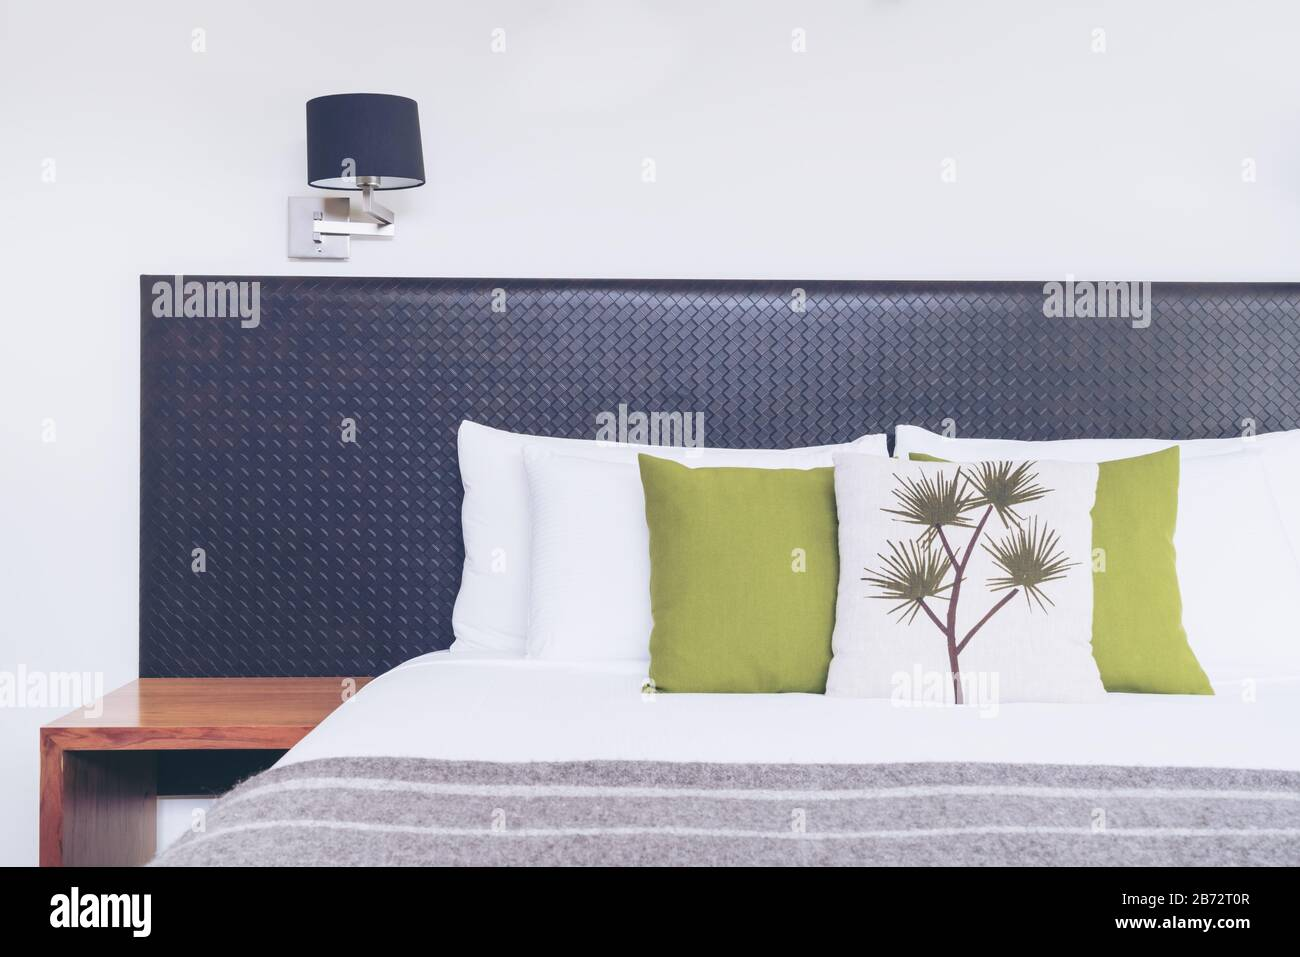 Bed Headboard Design In Bedroom Interior With Pillows And Blanket On The Bed Close Up View Of Australian Style Bedroom With Cozy Interior Design For Stock Photo Alamy